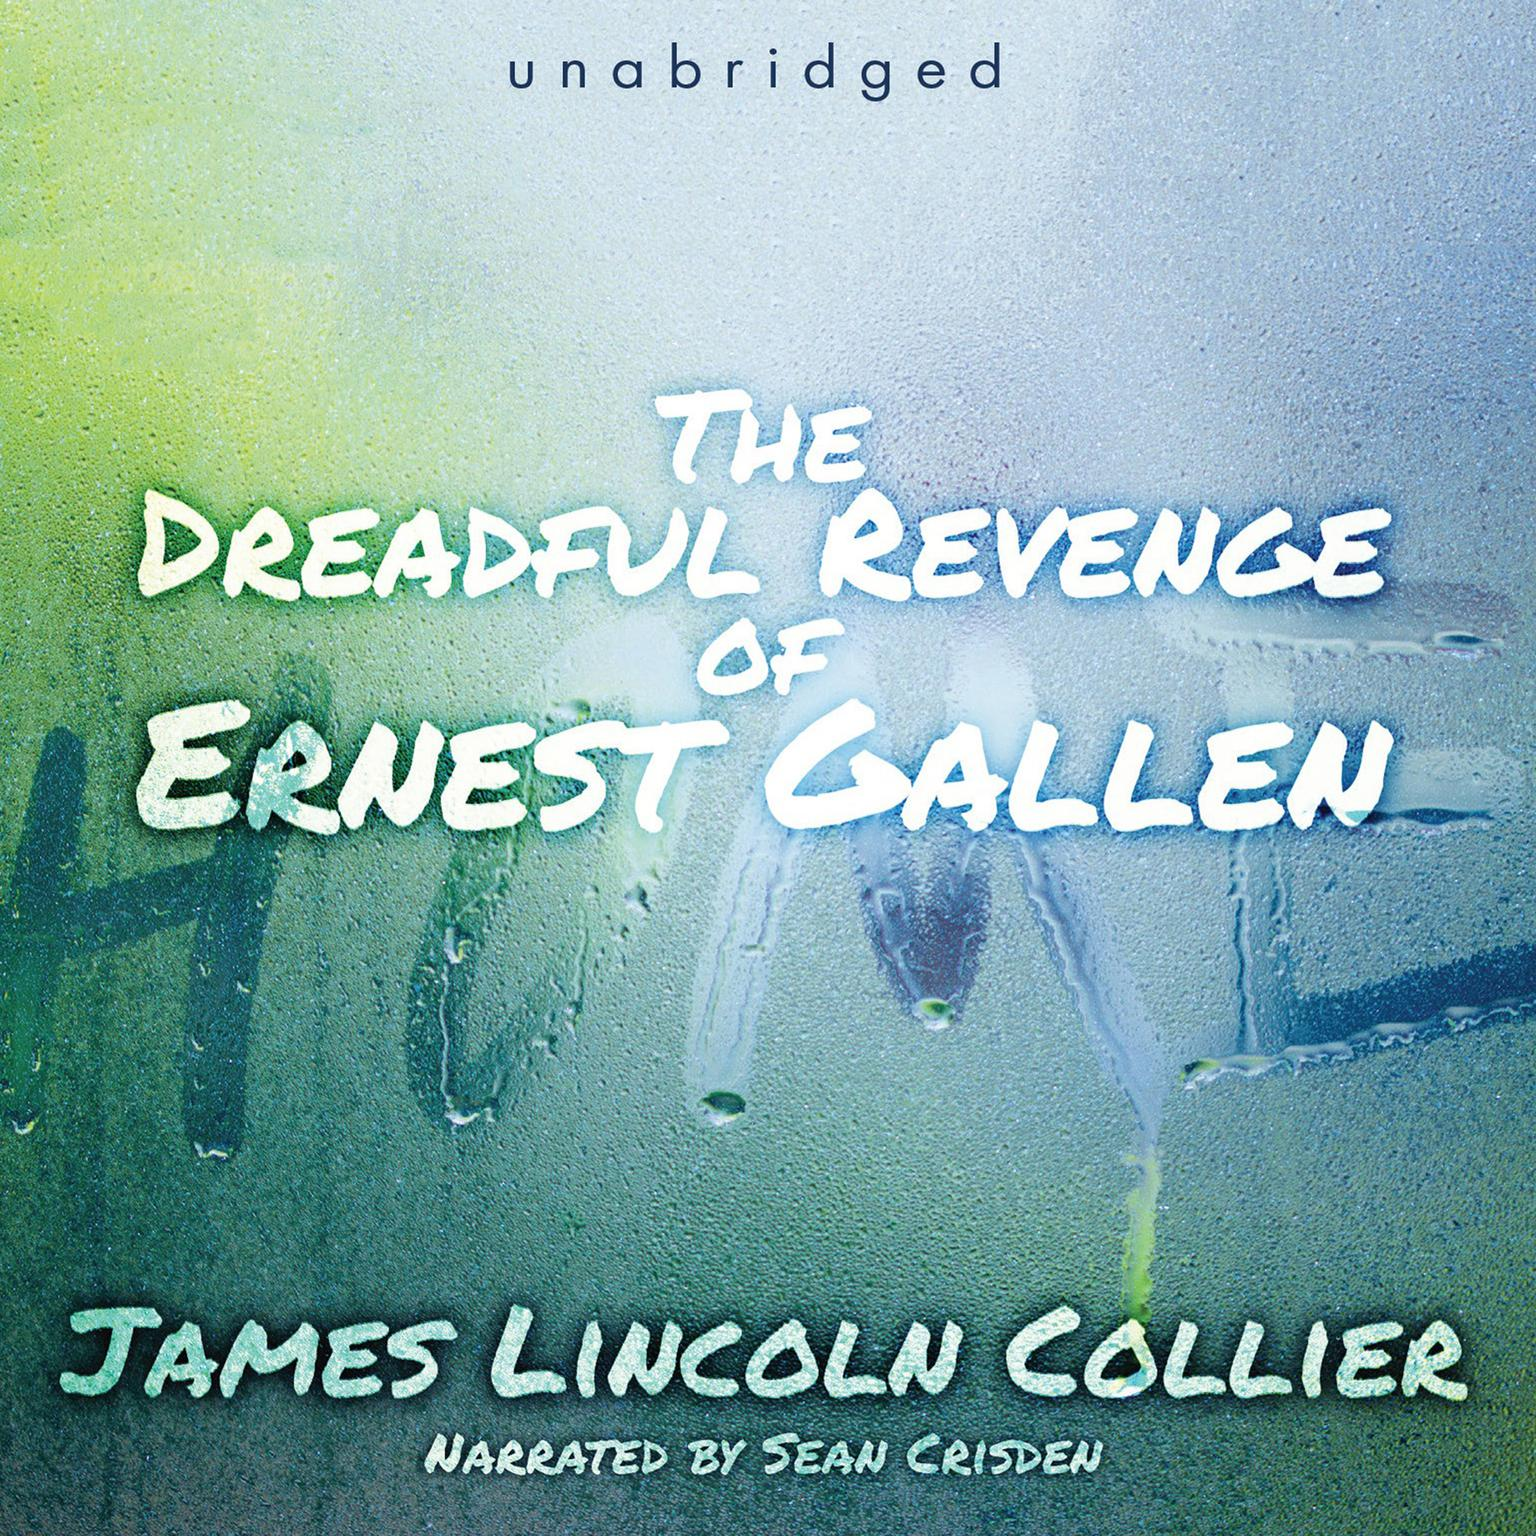 Printable The Dreadful Revenge of Ernest Gallen Audiobook Cover Art